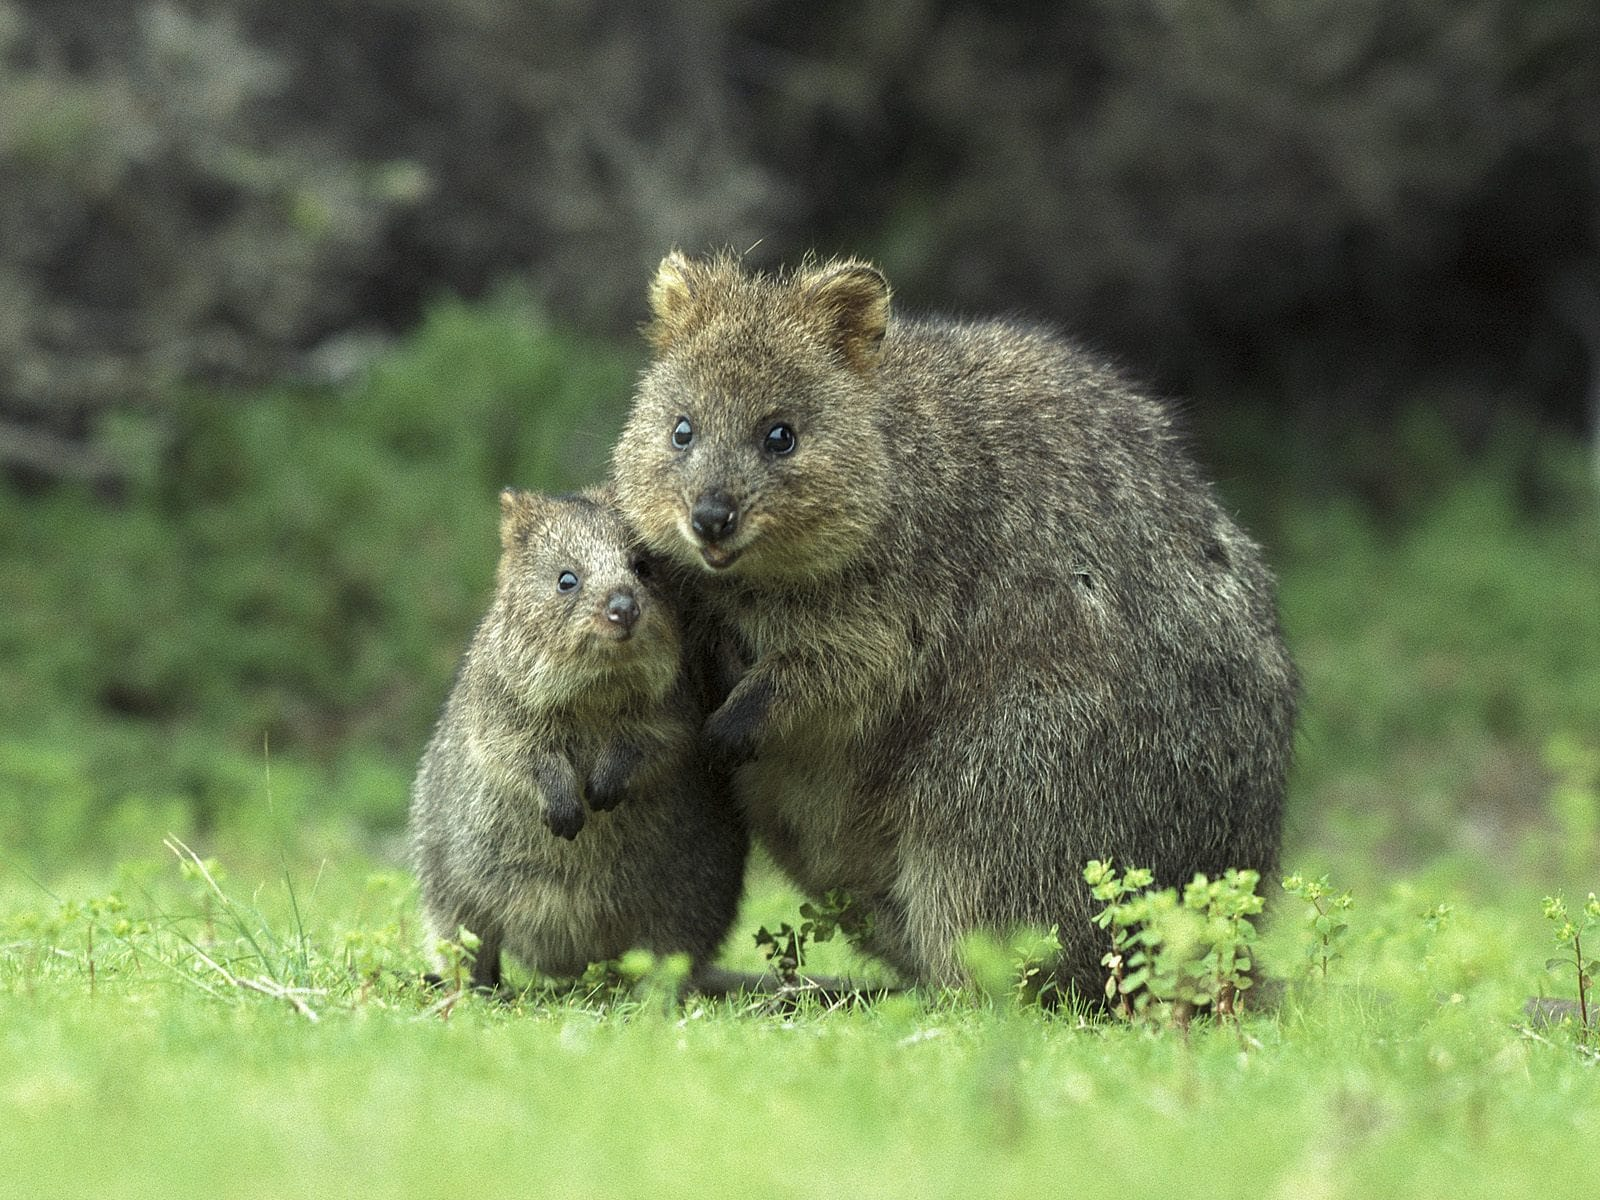 Quokka Wallpaper